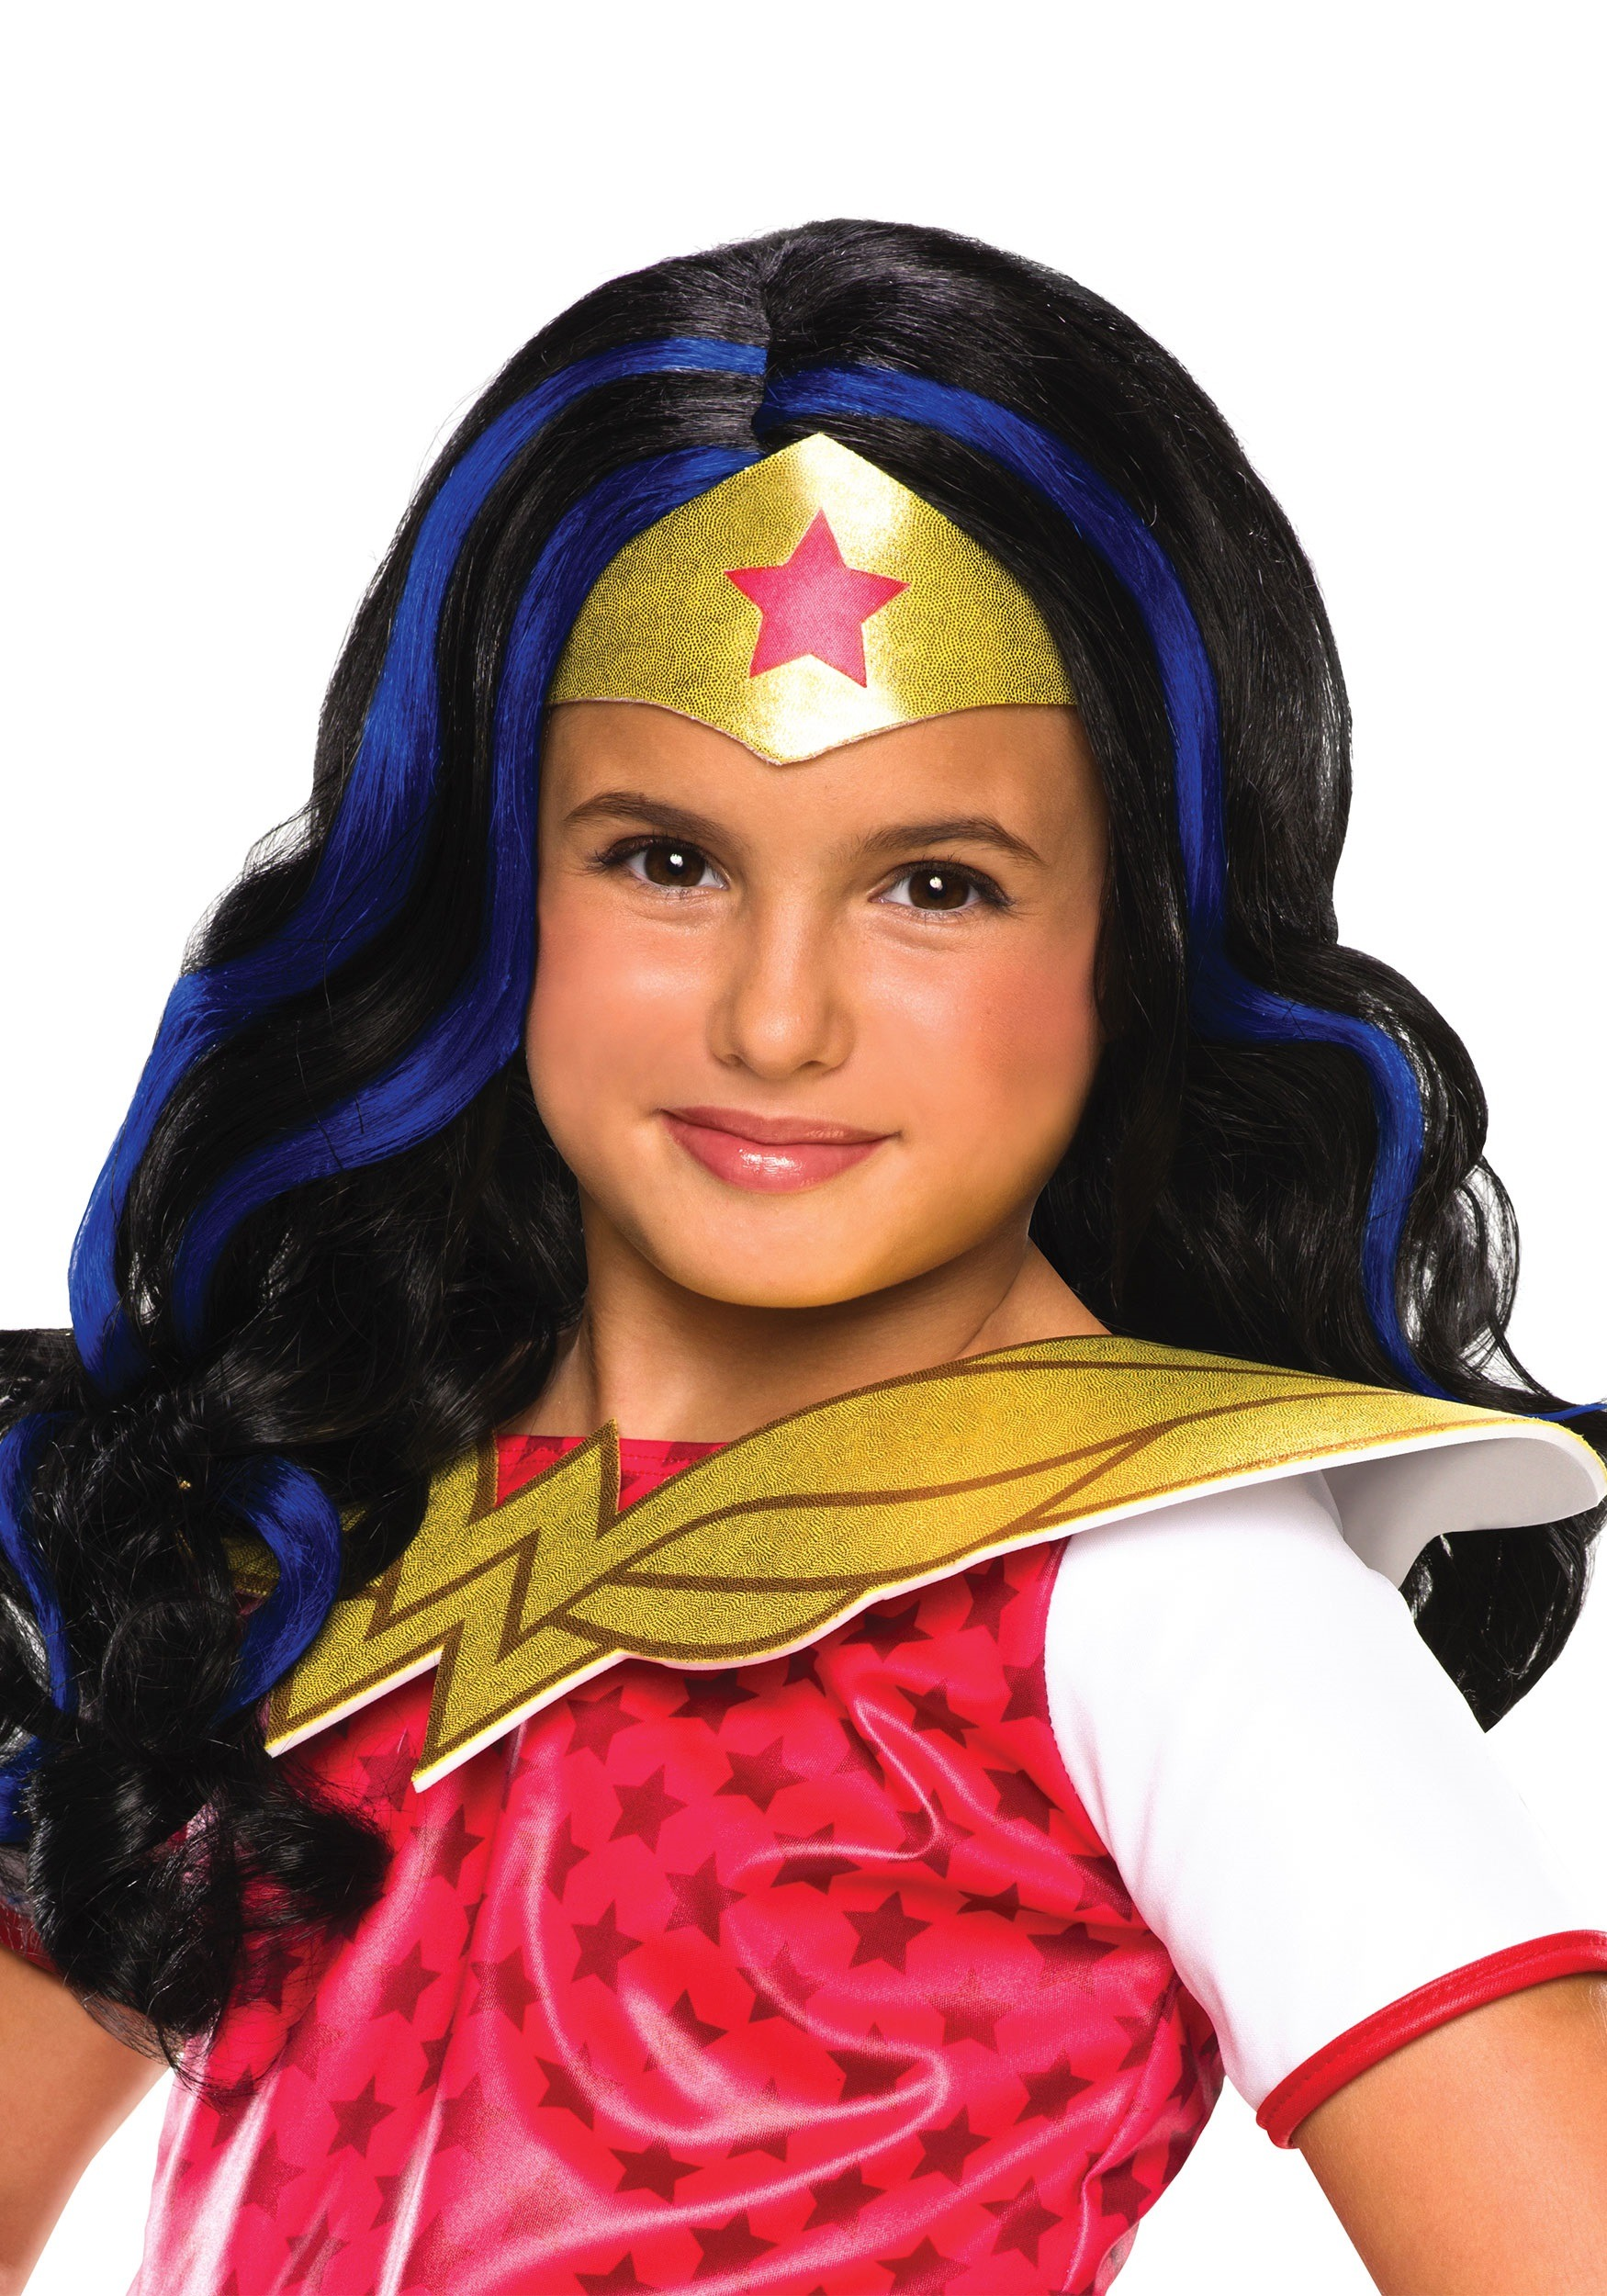 Girls DC Superhero Wonder Woman Wig RU32971